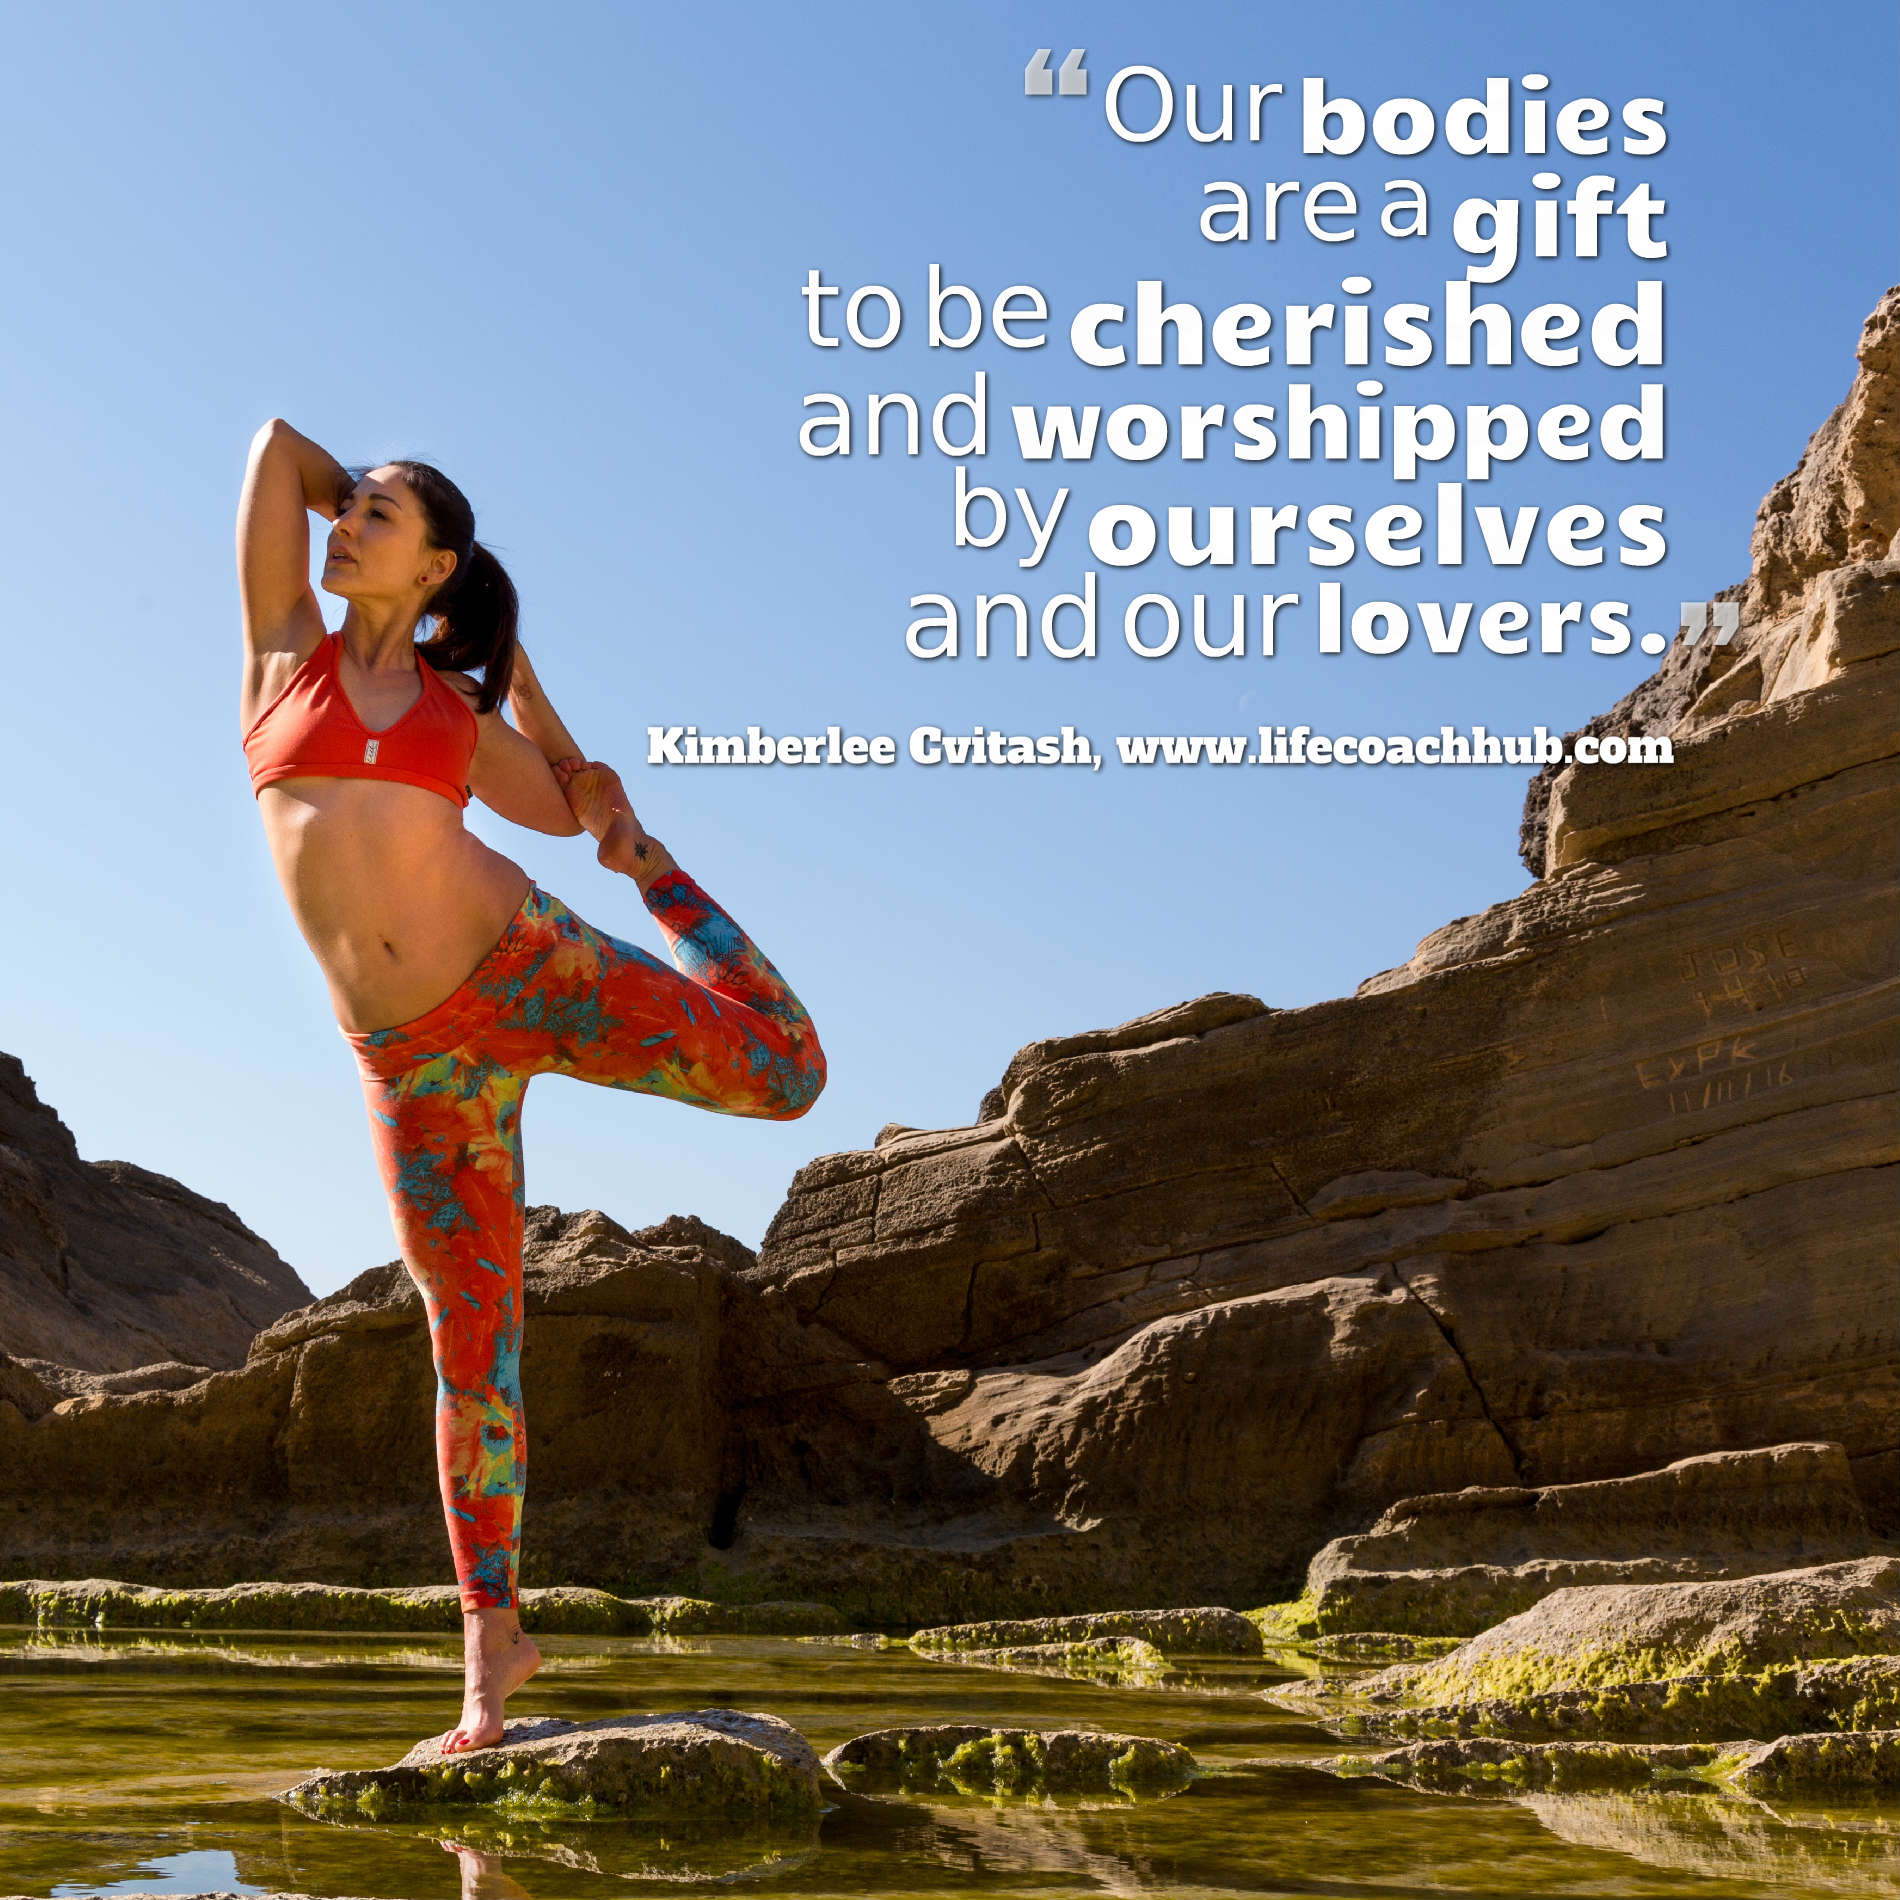 Our bodies are gifts to be cherished